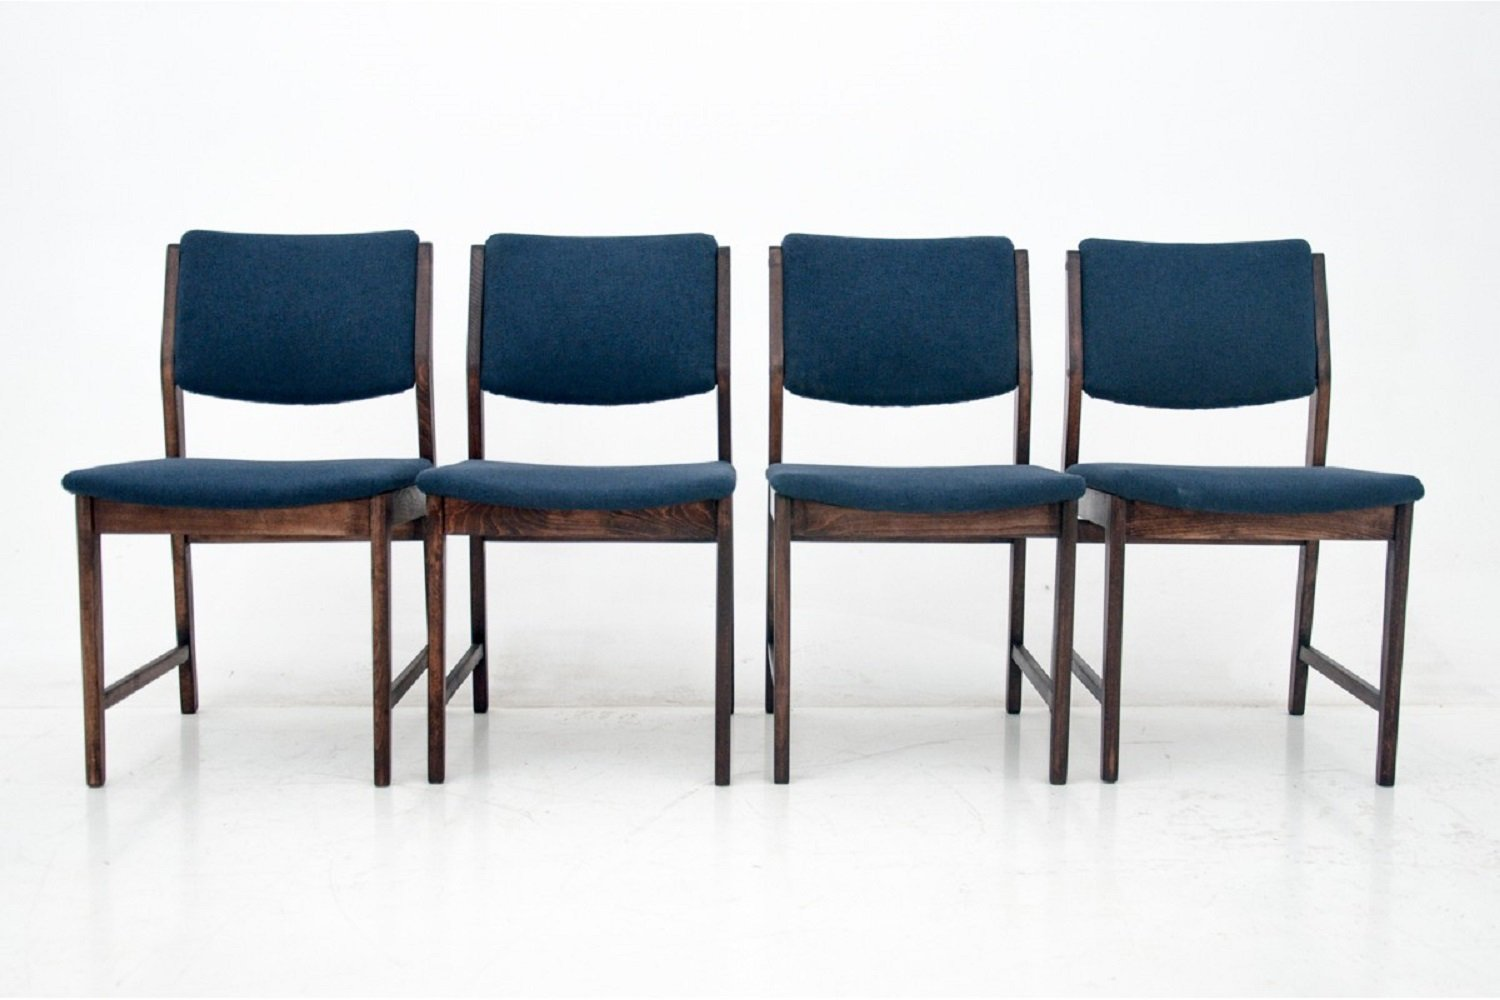 Set of 4 dining room chairs, Poland 1960s